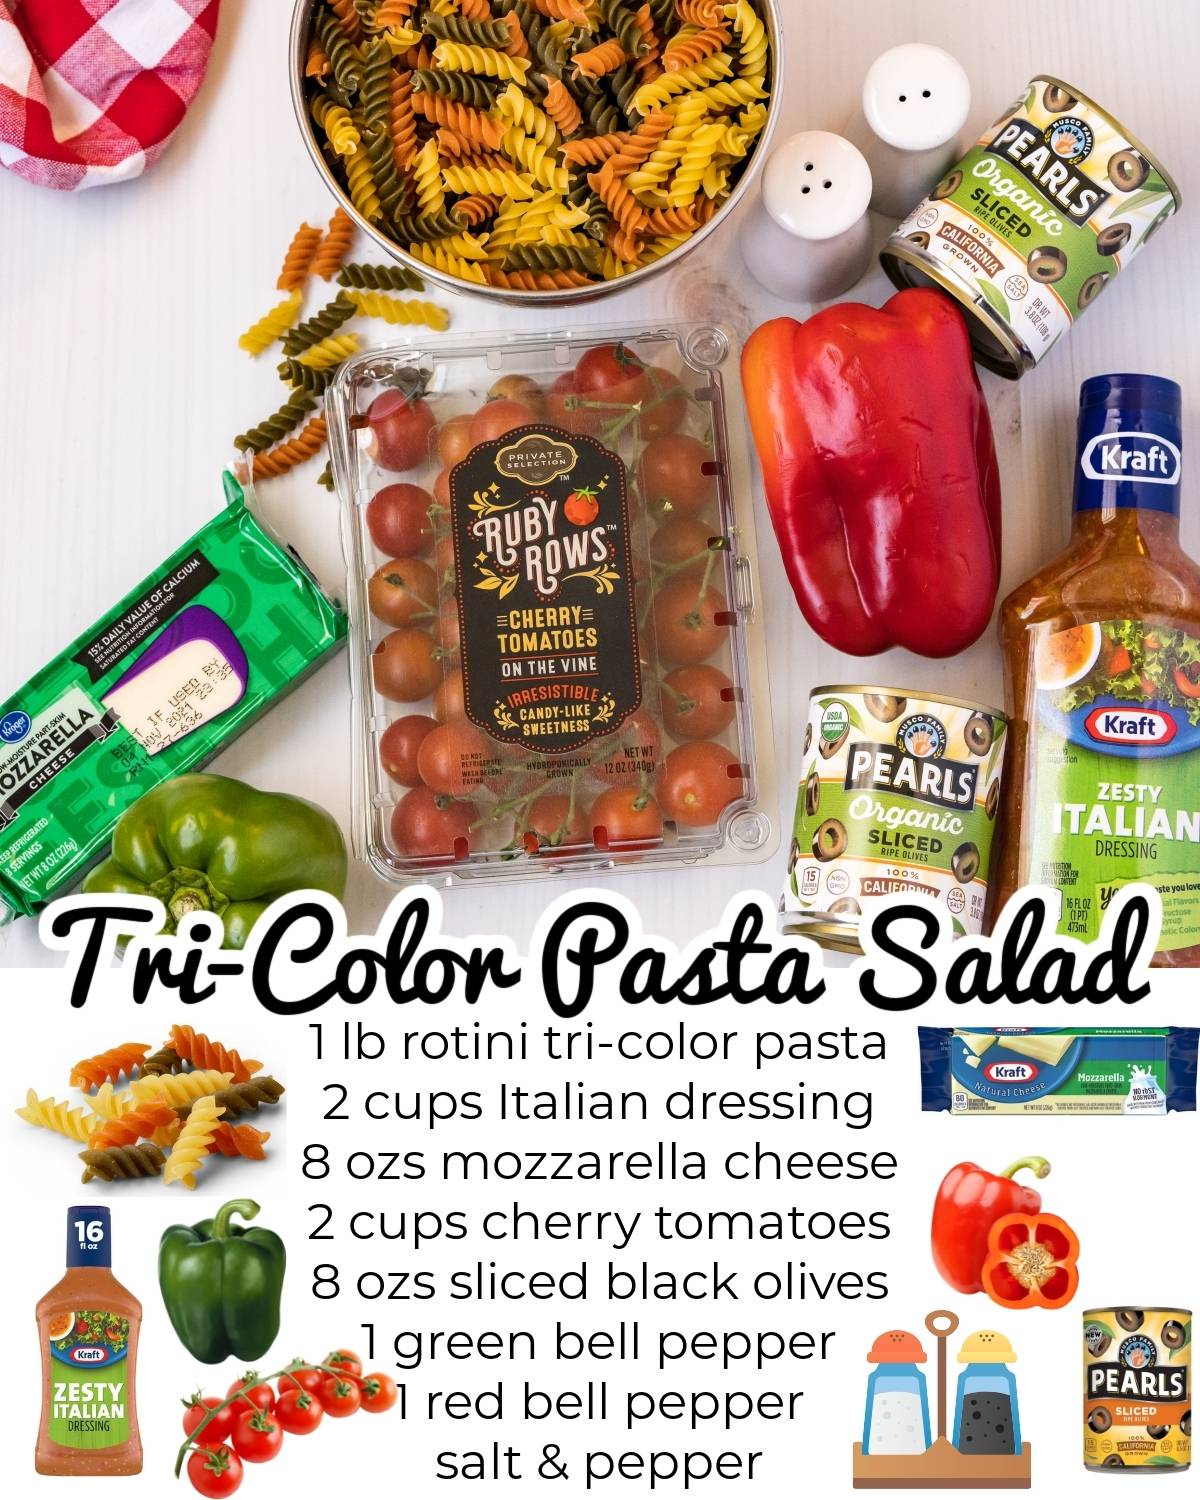 All of the ingredients needed to make this Tri Color Pasta Salad recipe.